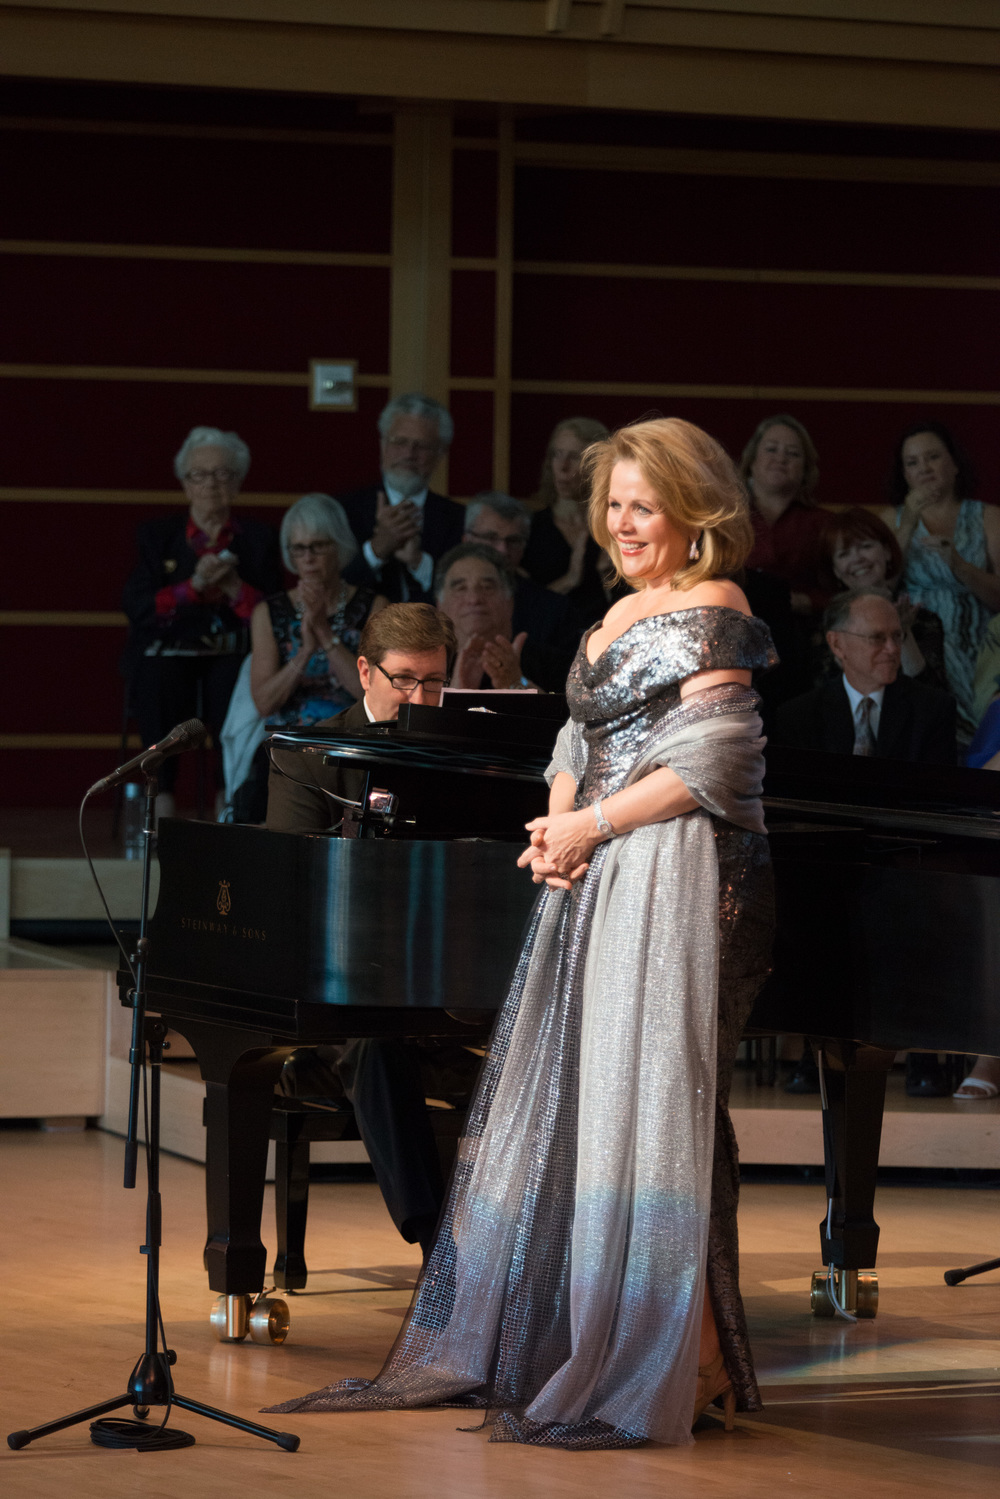 COURTESY // Kristen Loken    Renowned soprano Renée Fleming delighted crowds at the Green Music Center as she helped kickoff the opening to the 2013-2014 MasterCard Performance Series.